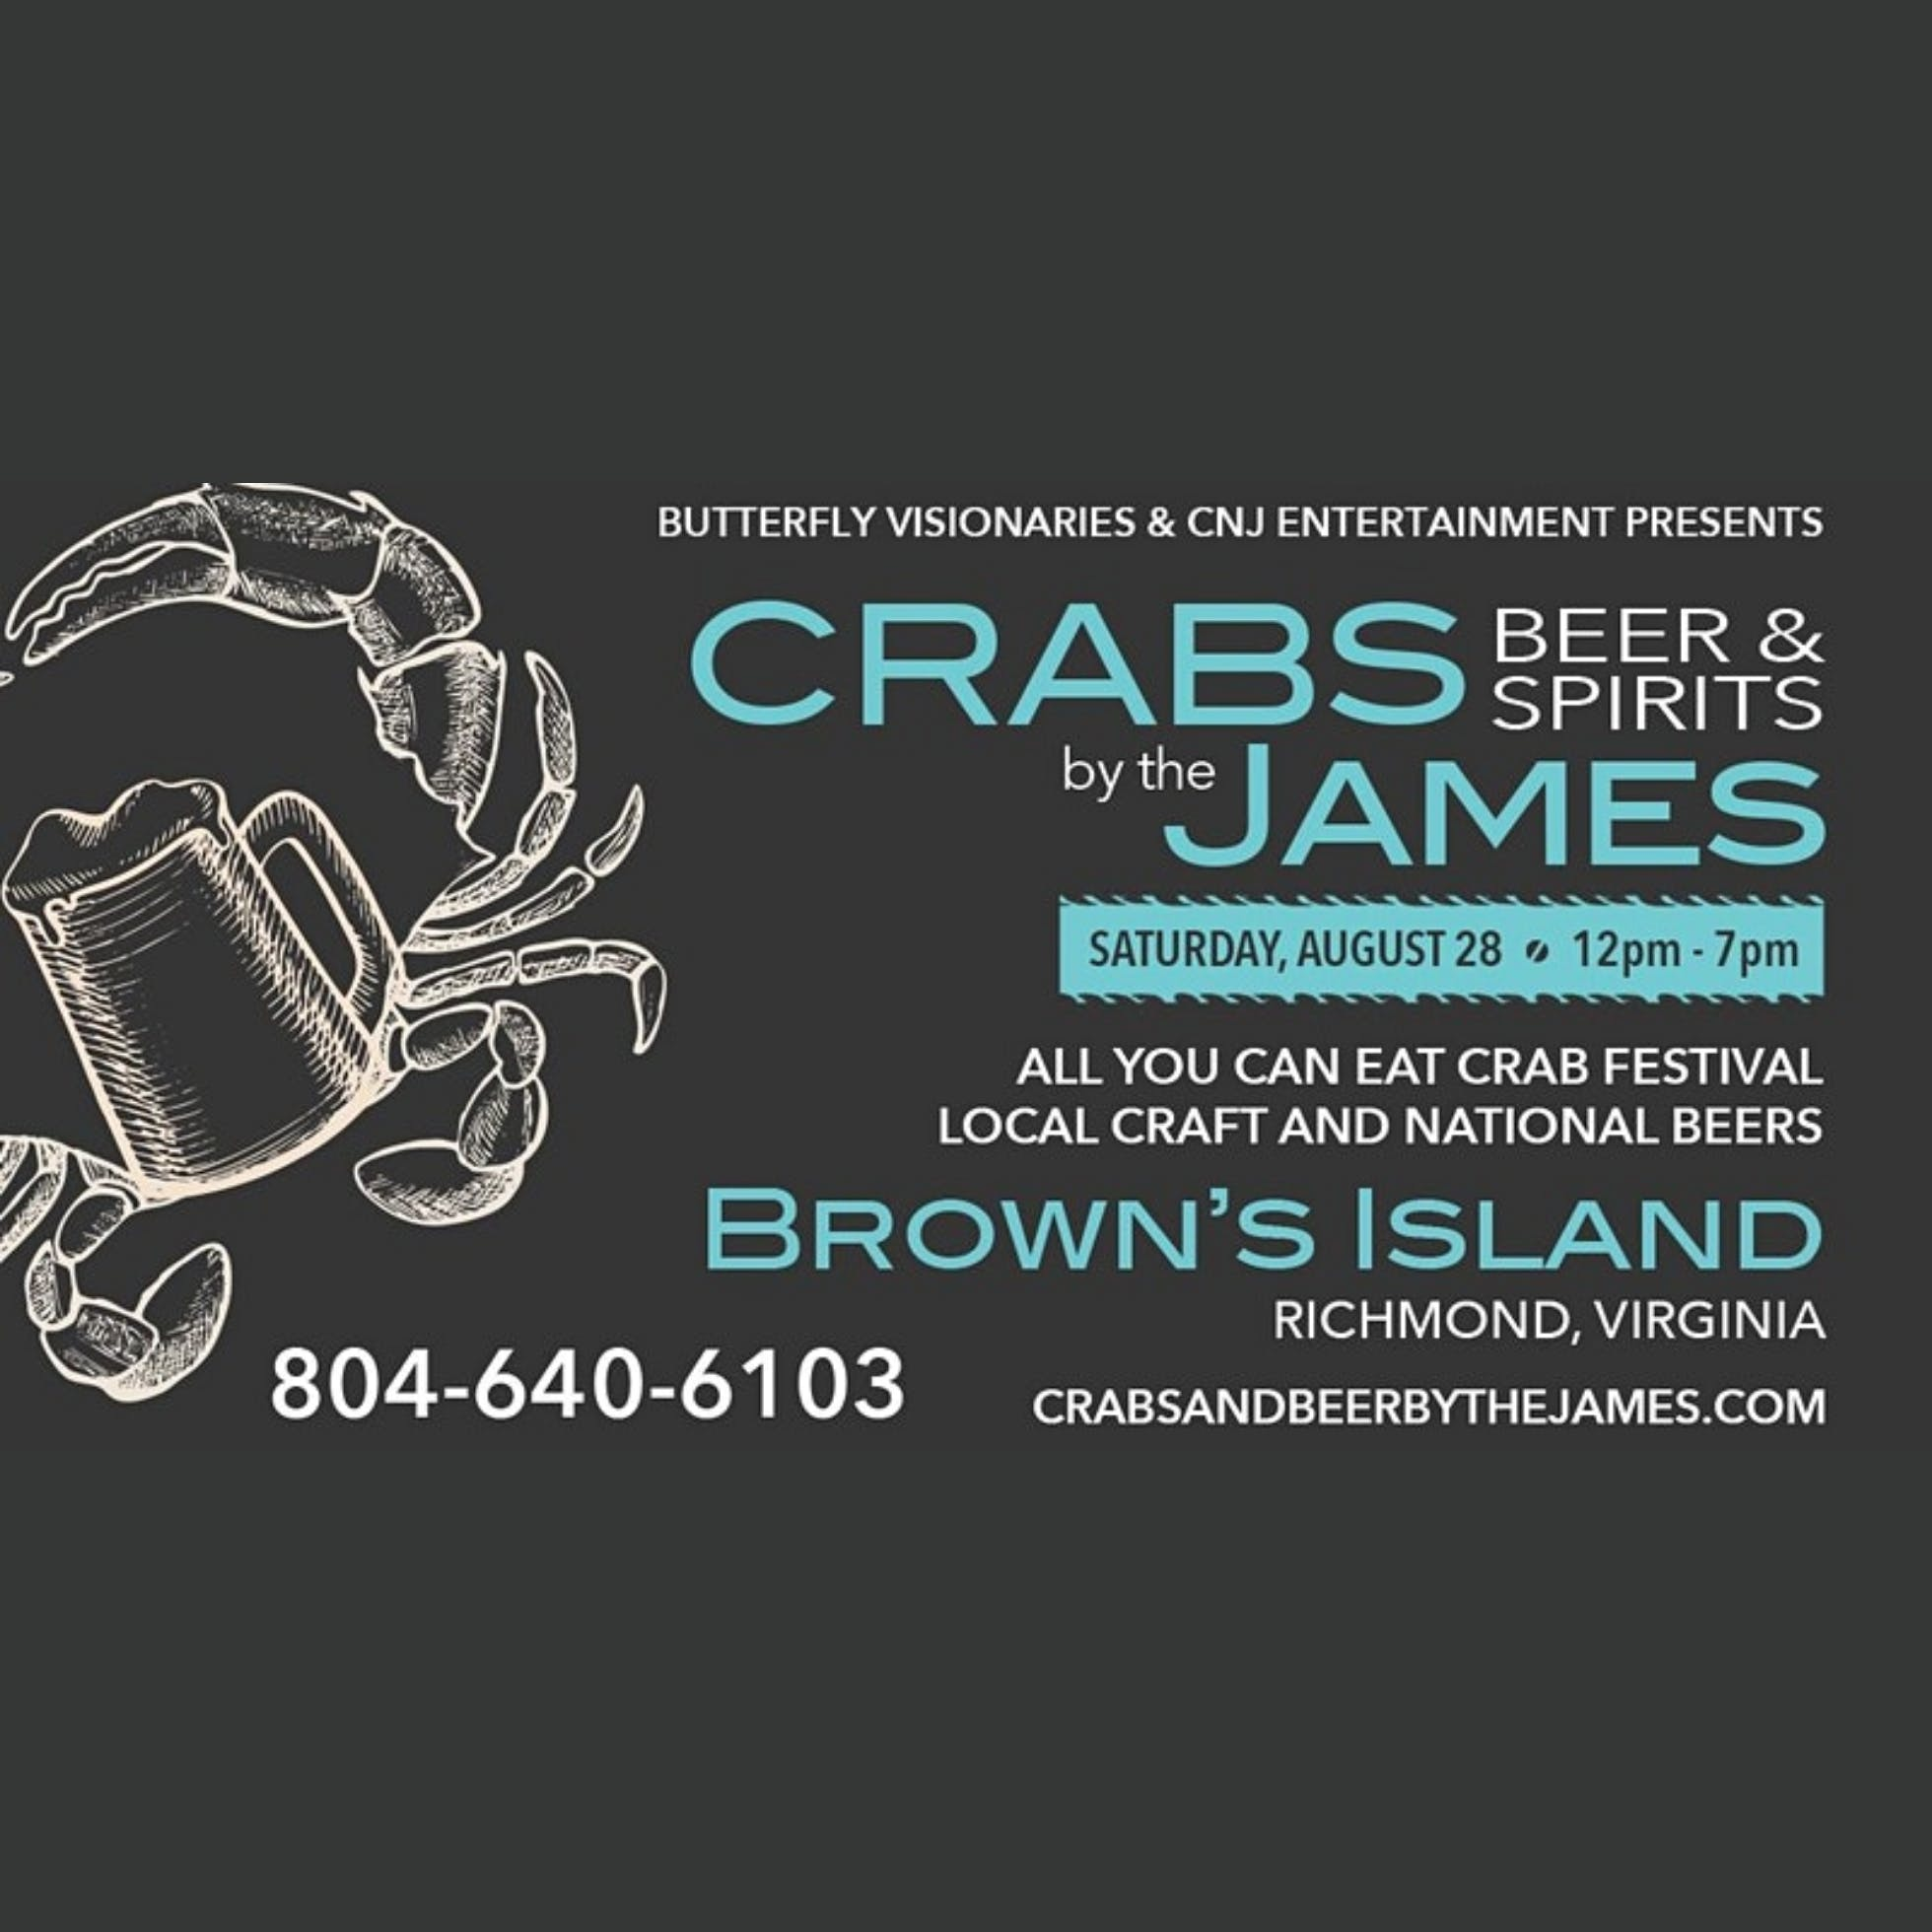 Crabs, Beers & Spirits by the James